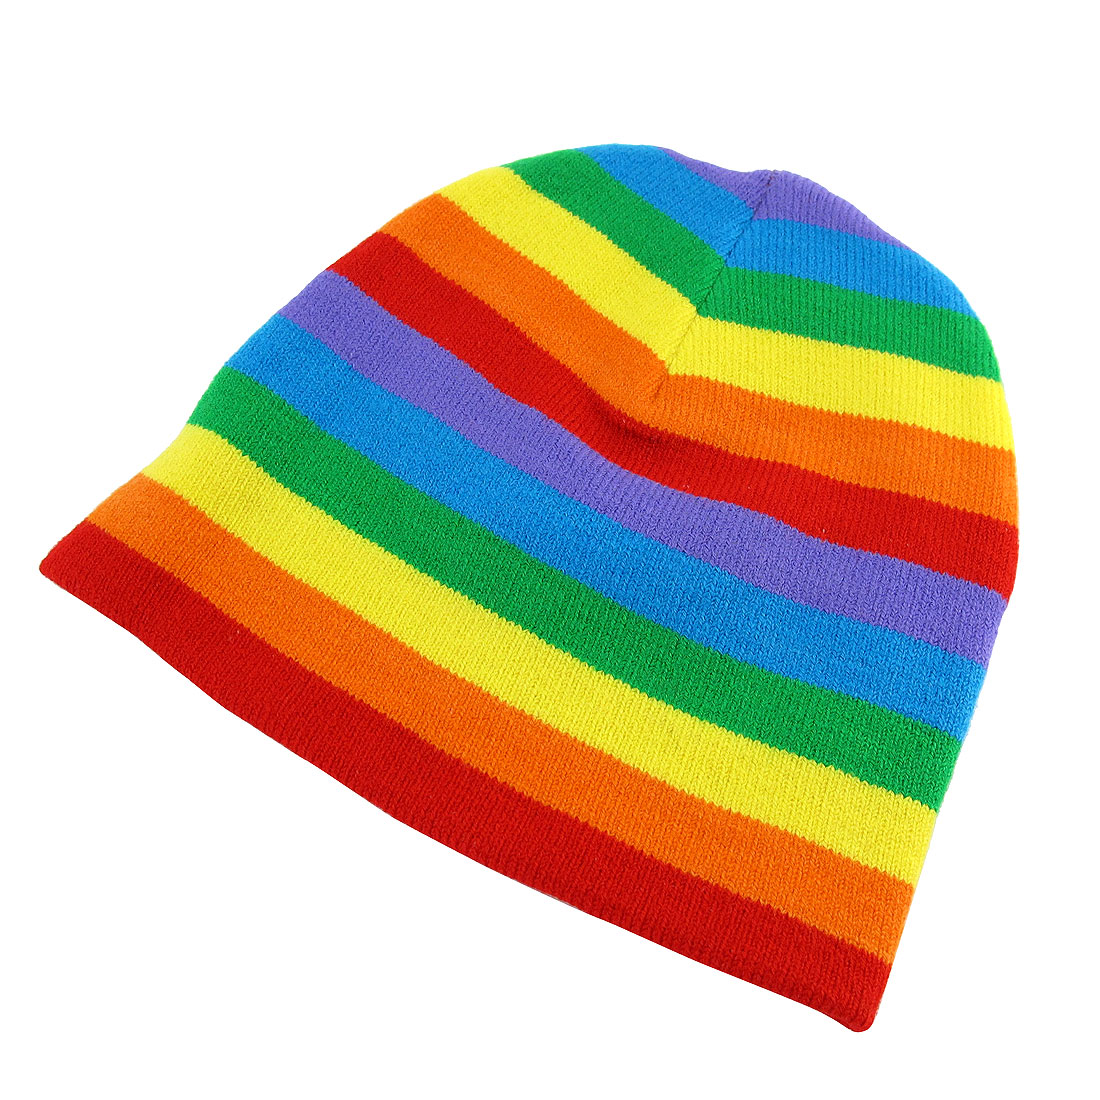 Rainbow Stripes Print Knitted Elastic Skull Beanie Hat for Ladies